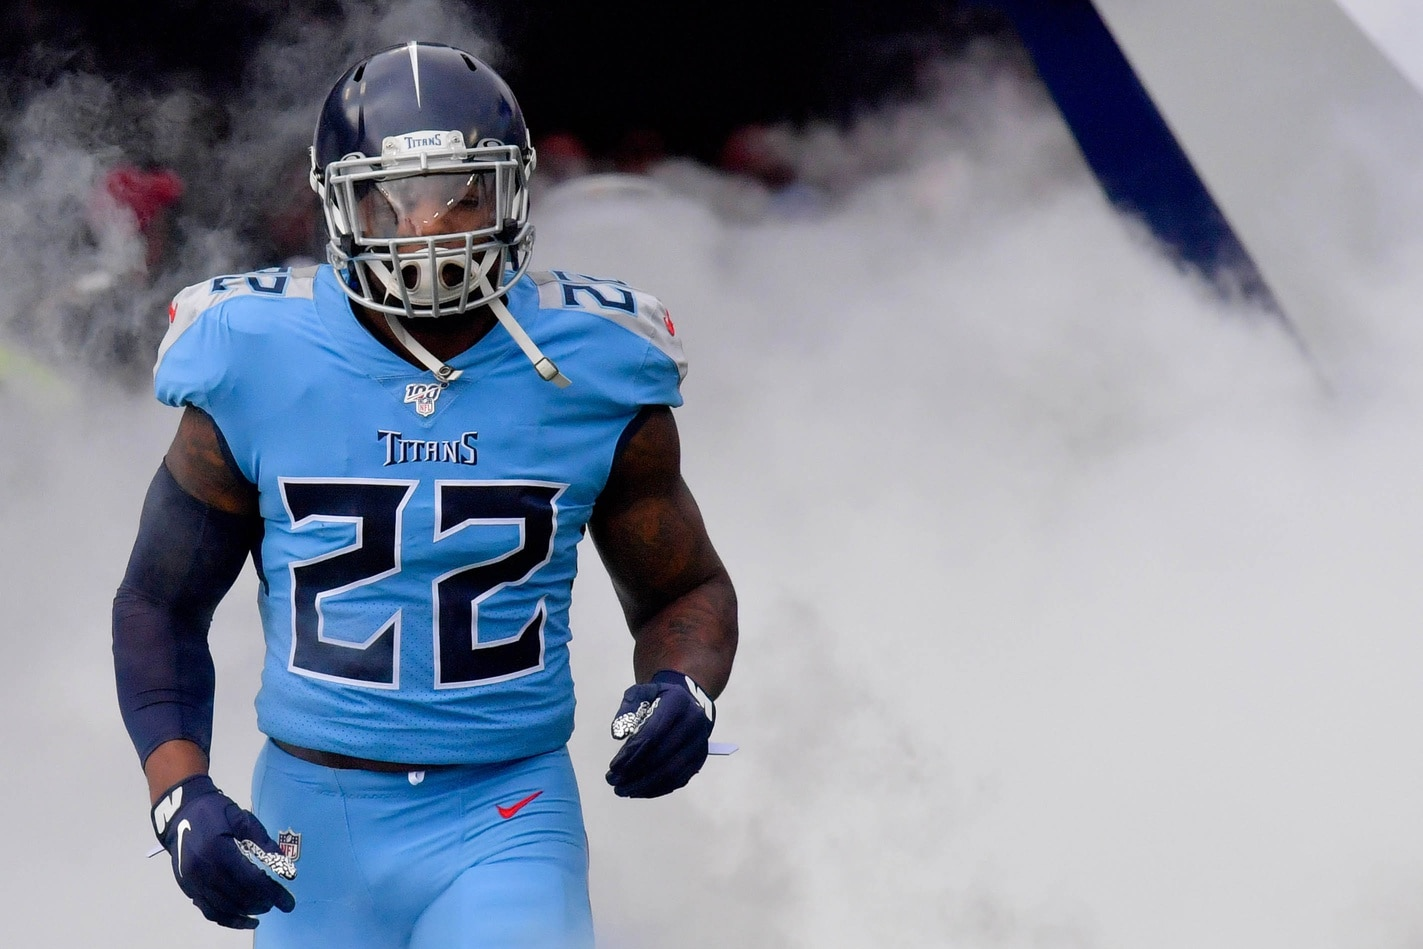 Report: Titans sign Derrick Henry to four-year, $50 million contract